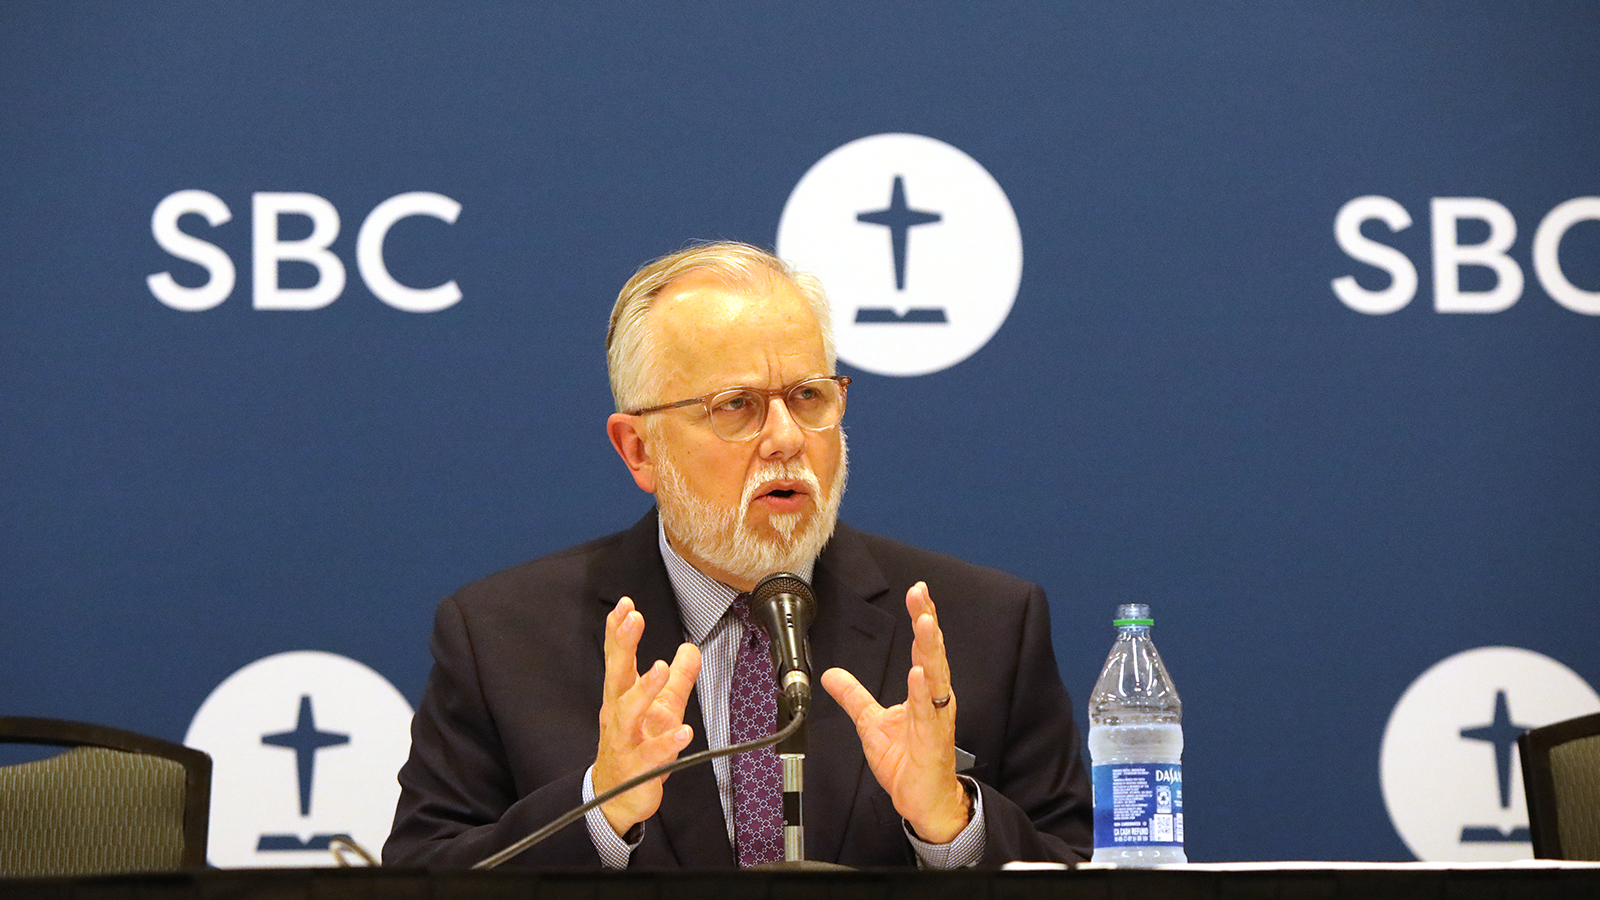 The Rev. Ed Litton speaks during a news conference following his election as the next president of the Southern Baptist Convention, during their annual meeting, Tuesday, June 15, 2021, in Nashville. RNS photo by Kit Doyle